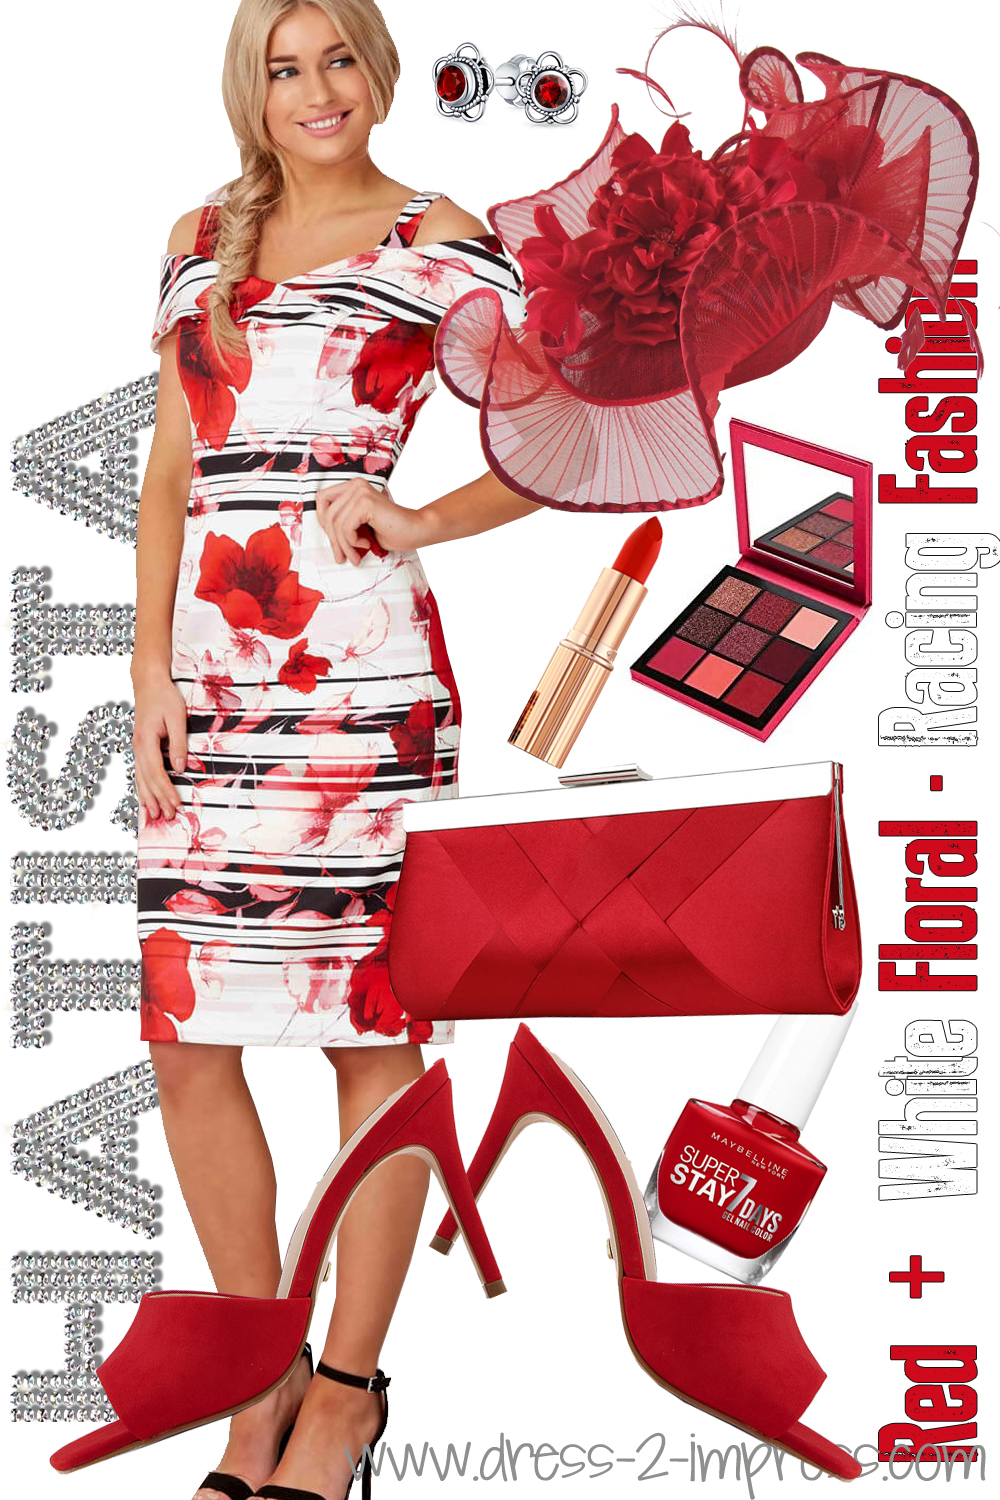 What to wear for Royal Ascot 2021. Red and White Outfit for Royal Ascot 2021. Bright outfits for Royal Ascot 2021. Big Hats for Royal Ascot 2021. Outfits for the Races 2021. What to wear to the races 2021. Outfits for Royal Ascot. Red and White Mother of the Bride outfits 2021. Royal Ascot Dress 2021. Big Red Fascinators. Red Mother of the Bride Hats 2021. Fashion Ideas for Day at the Races 2021.